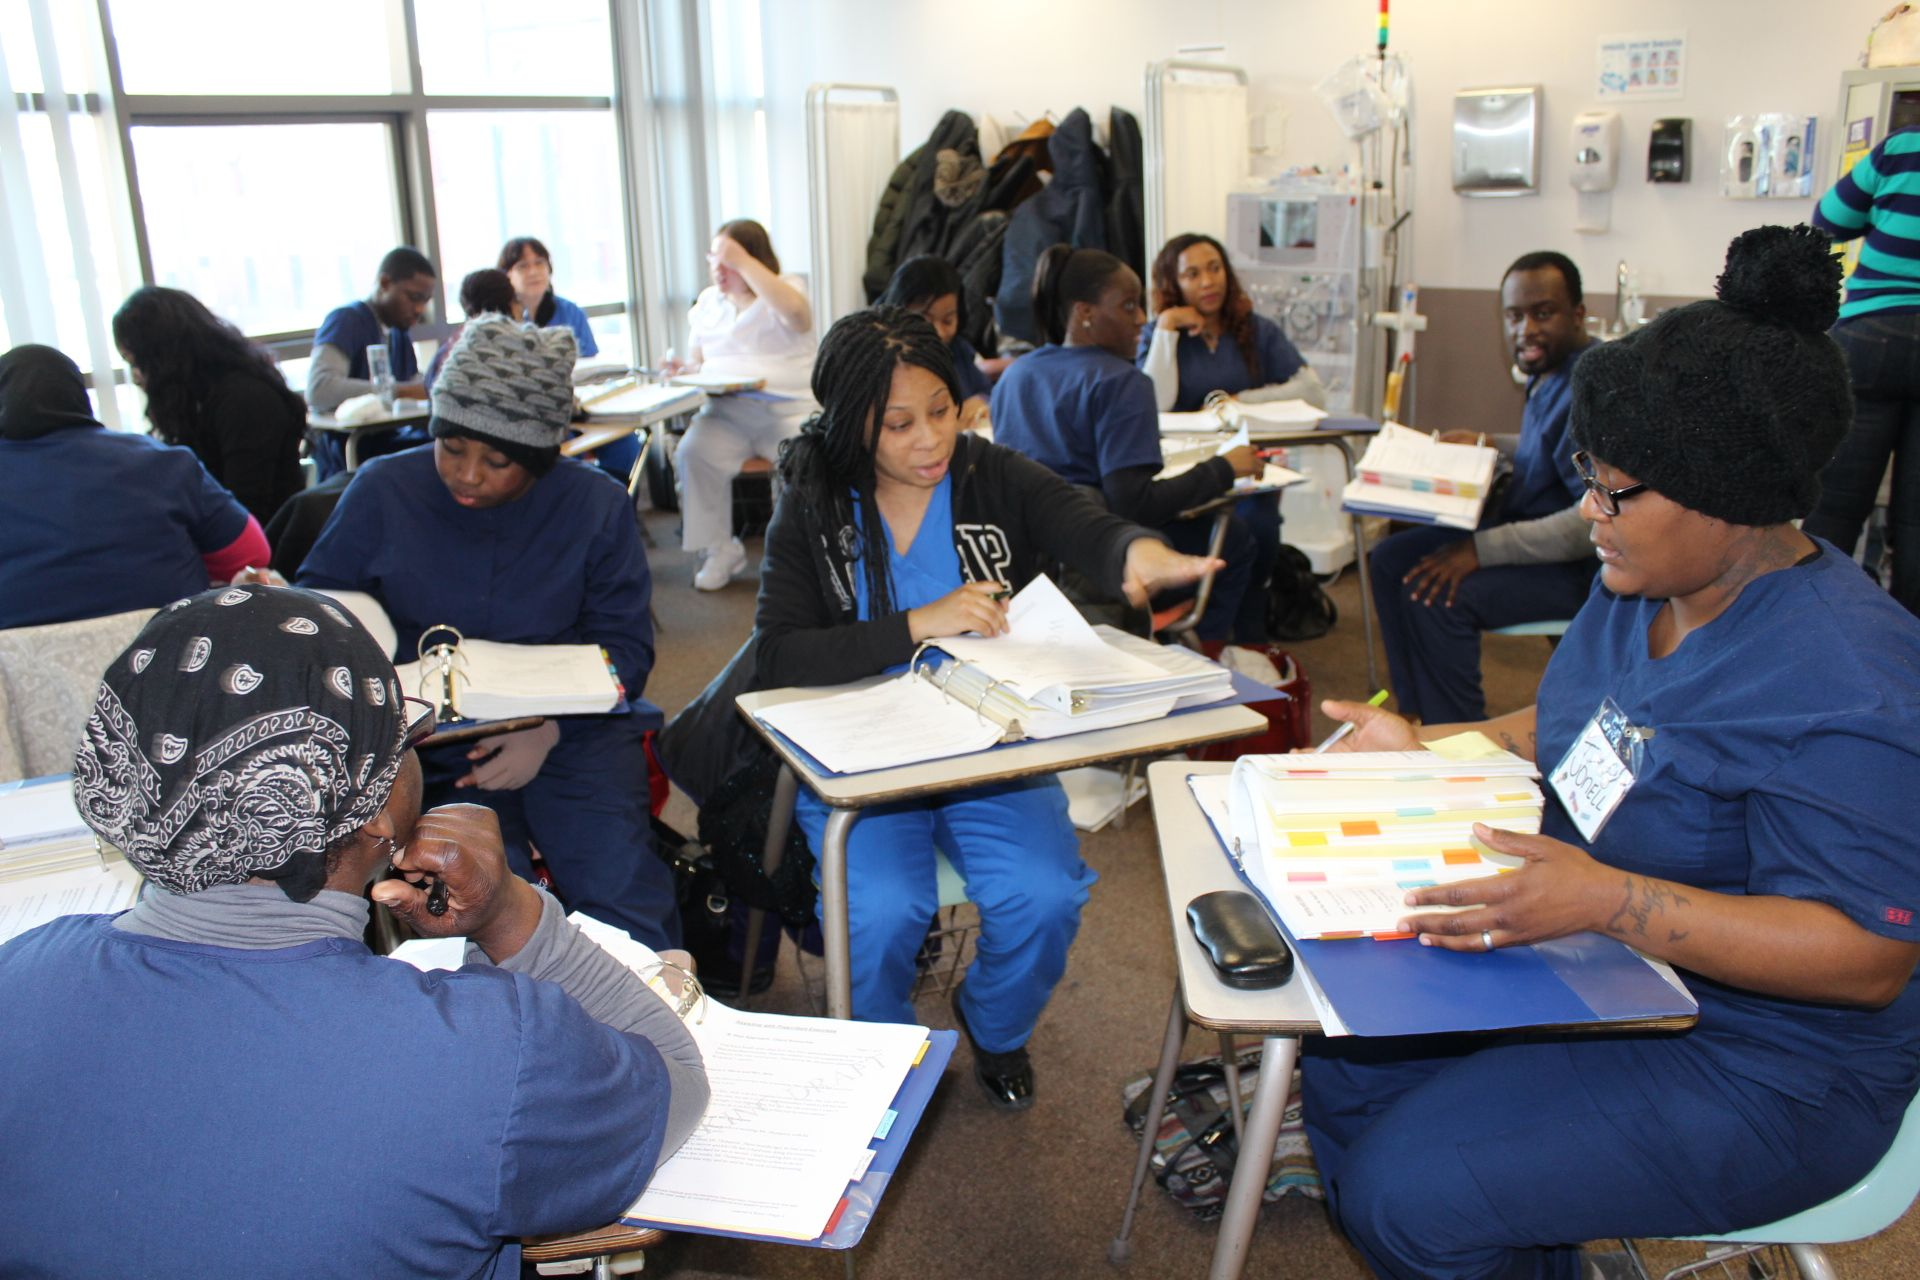 Home health aide students healthcare training